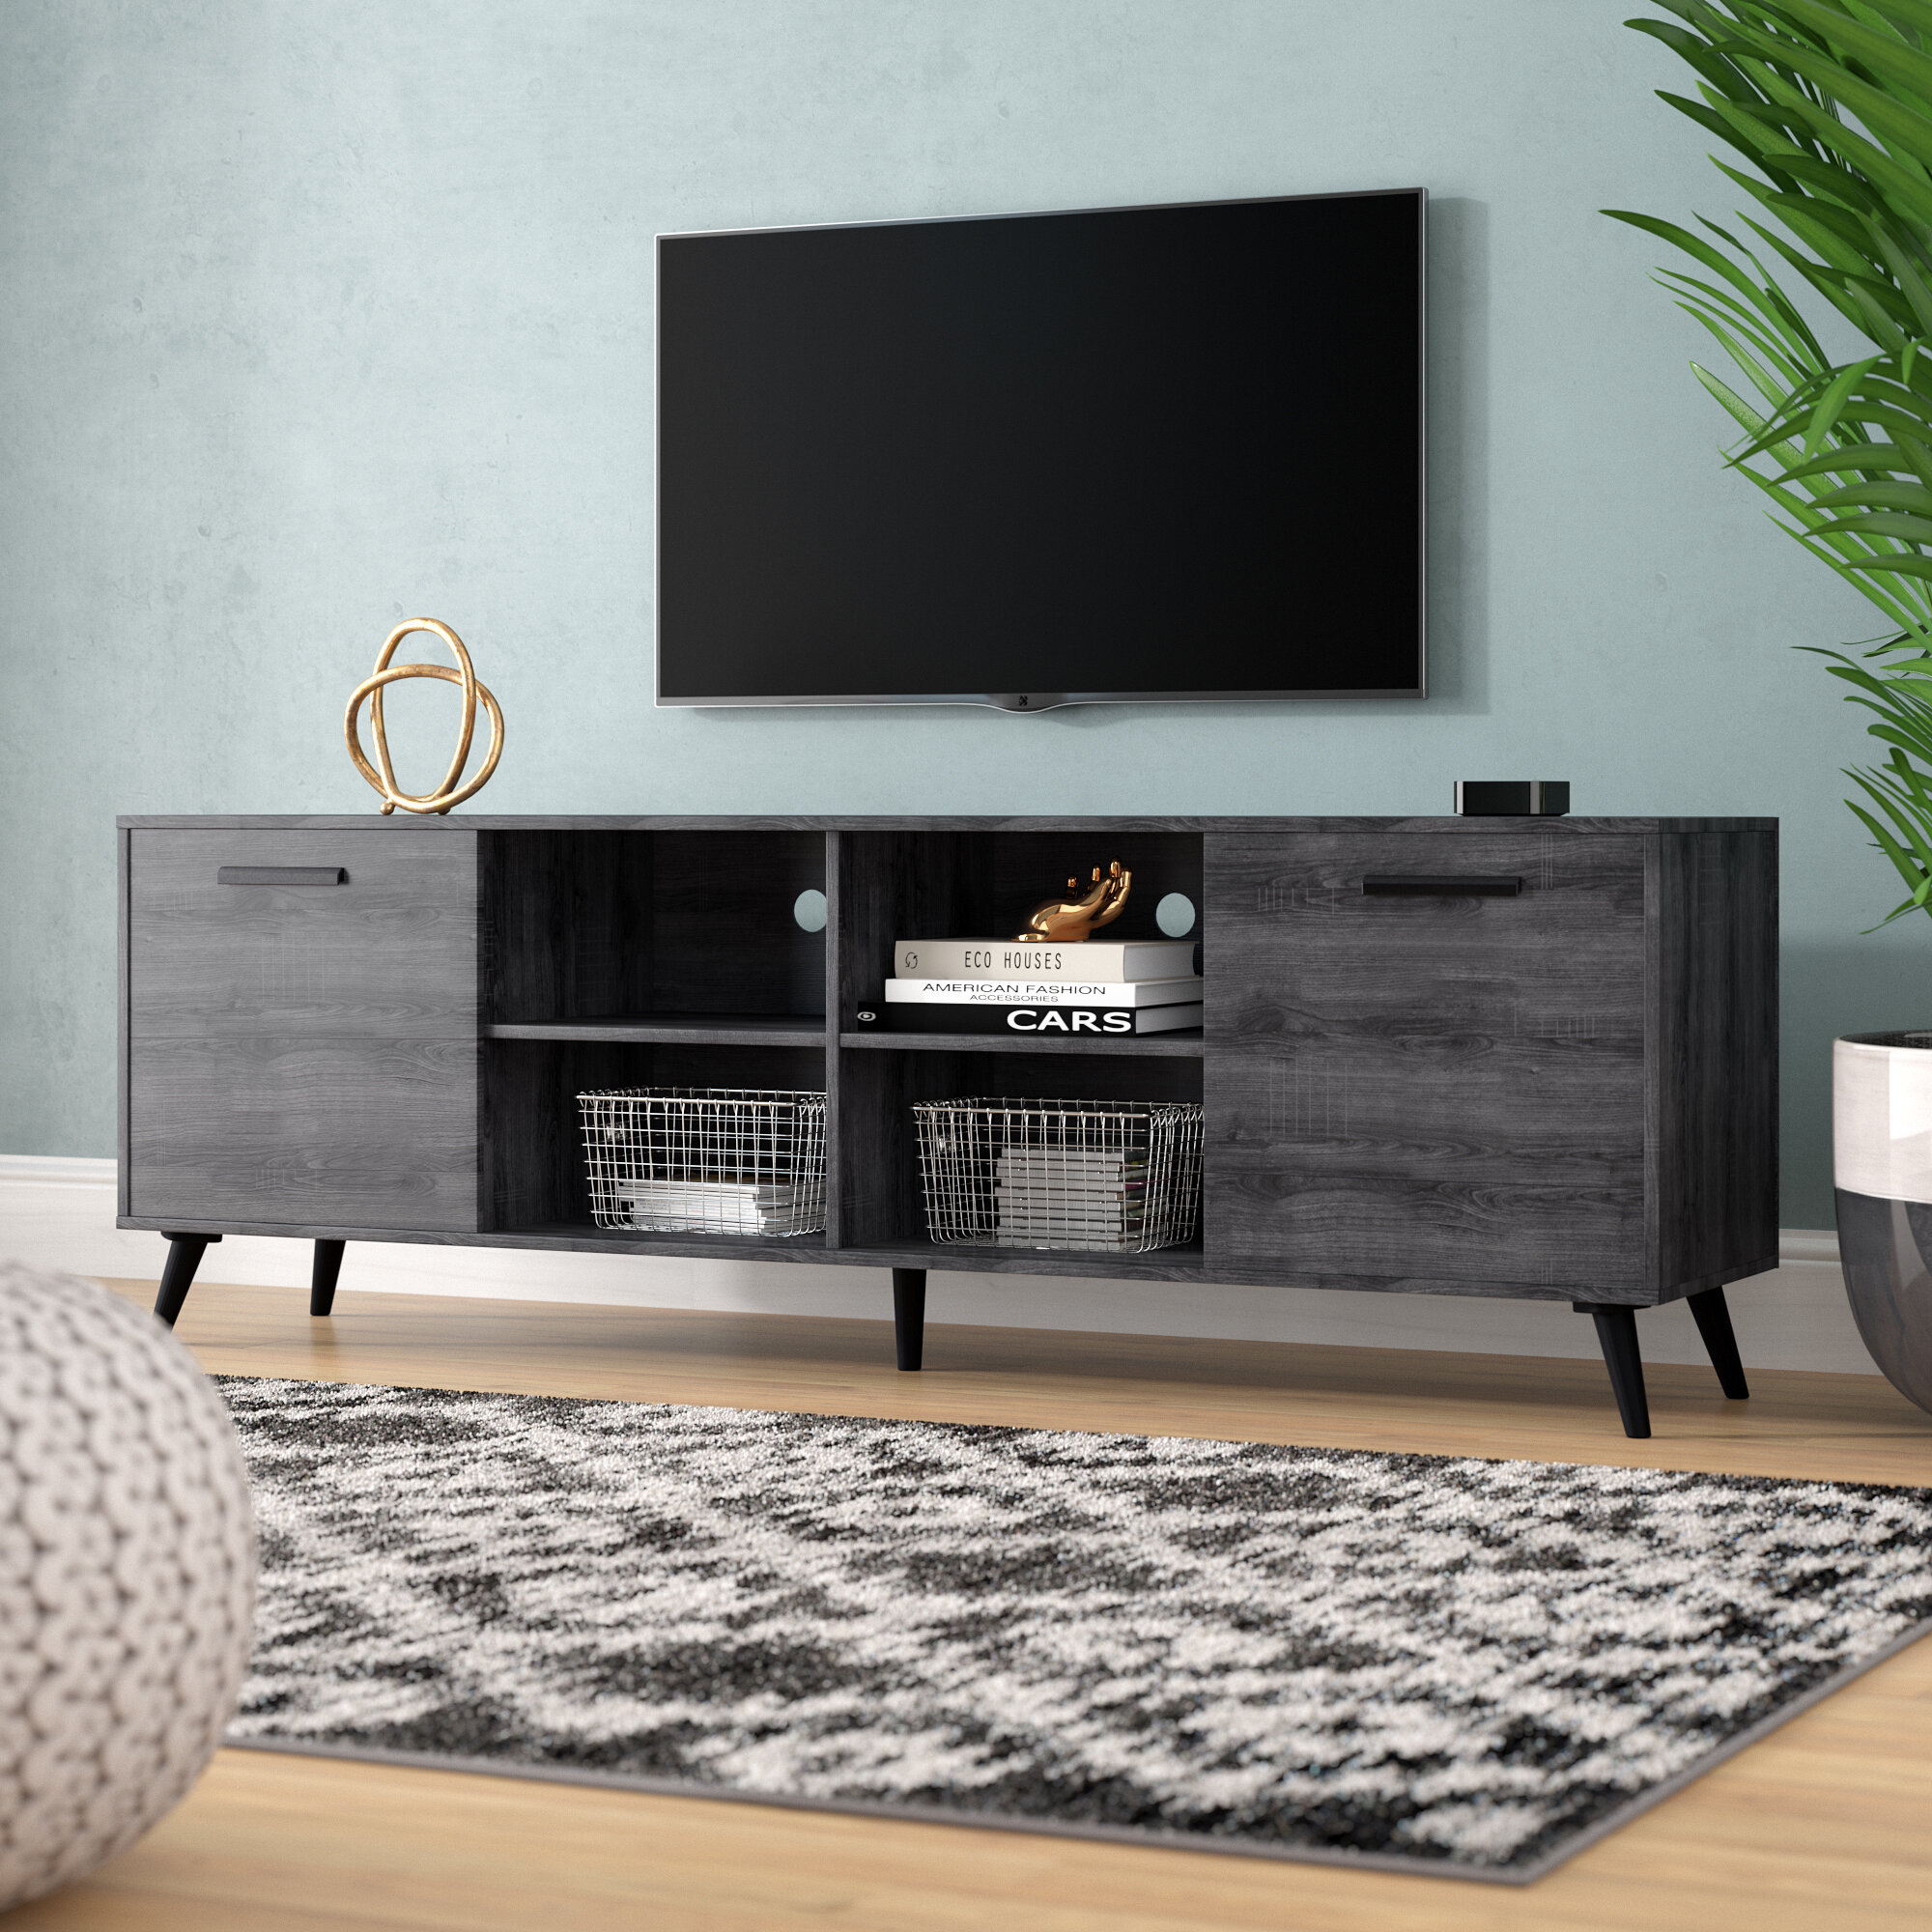 75 Inch Tv Stands Free Shipping Over 35 Wayfair